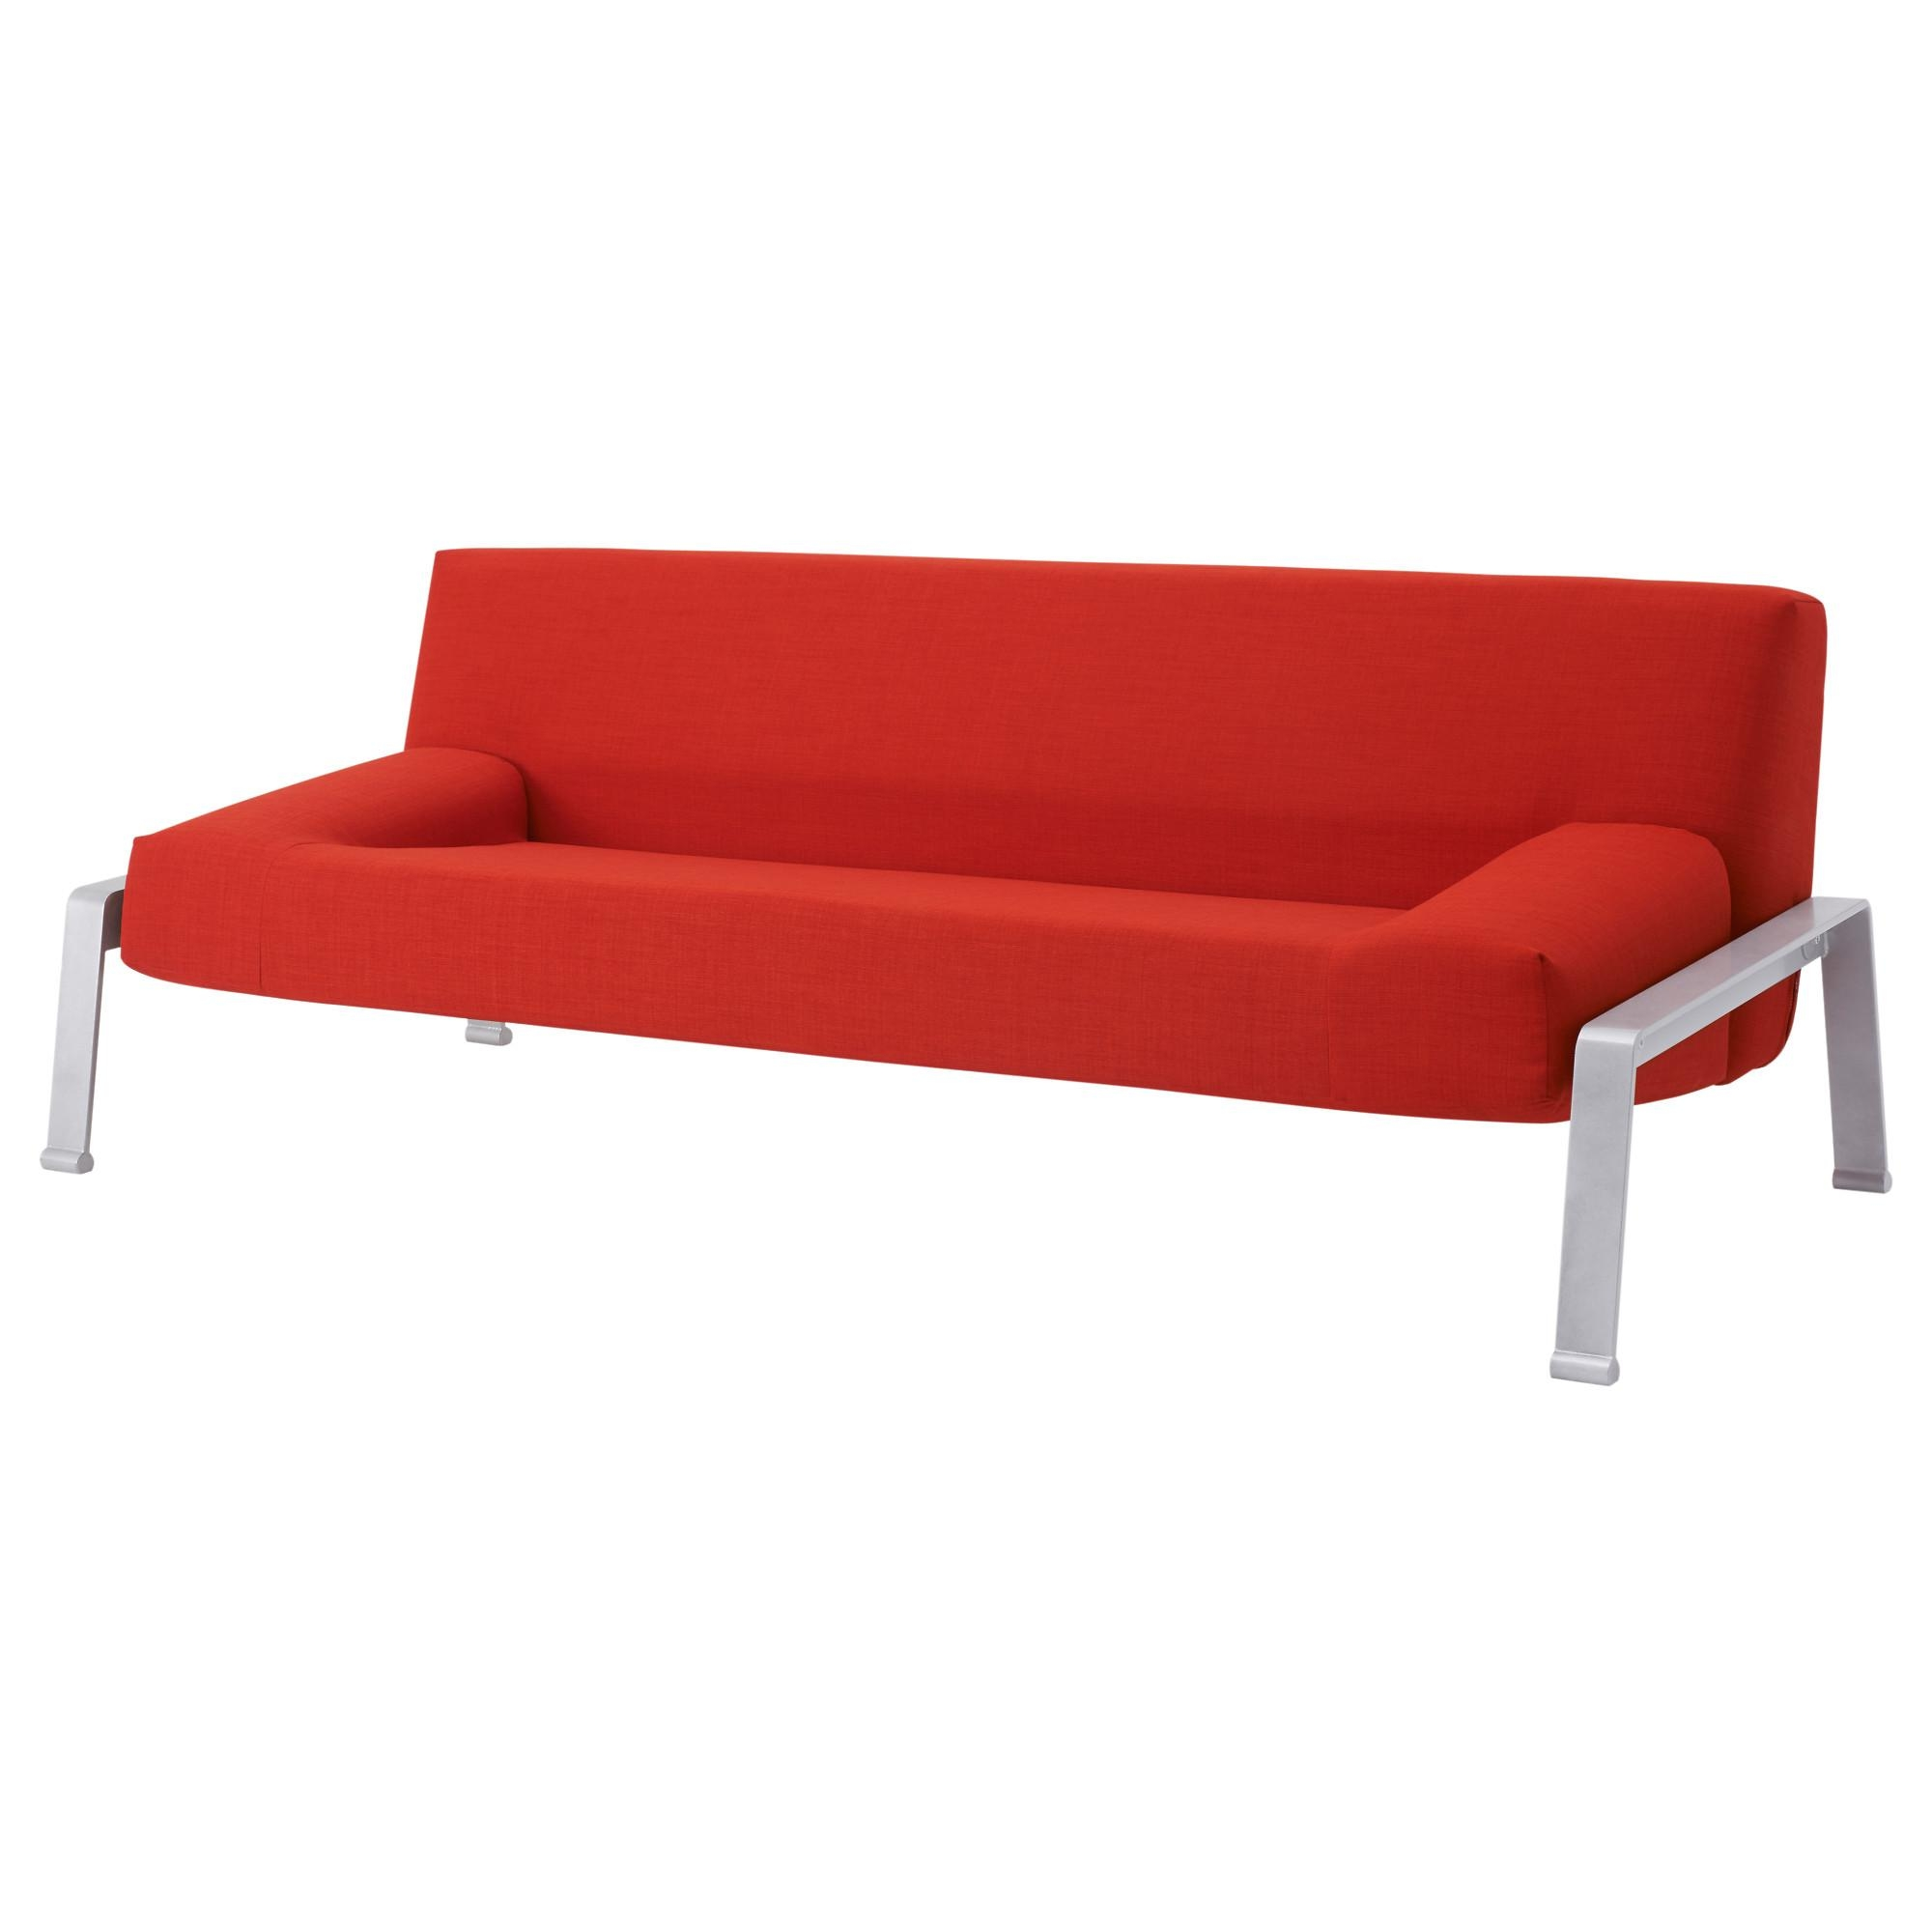 Sofa Beds & Futons – Ikea Pertaining To Red Sectional Sleeper Sofas (View 16 of 22)